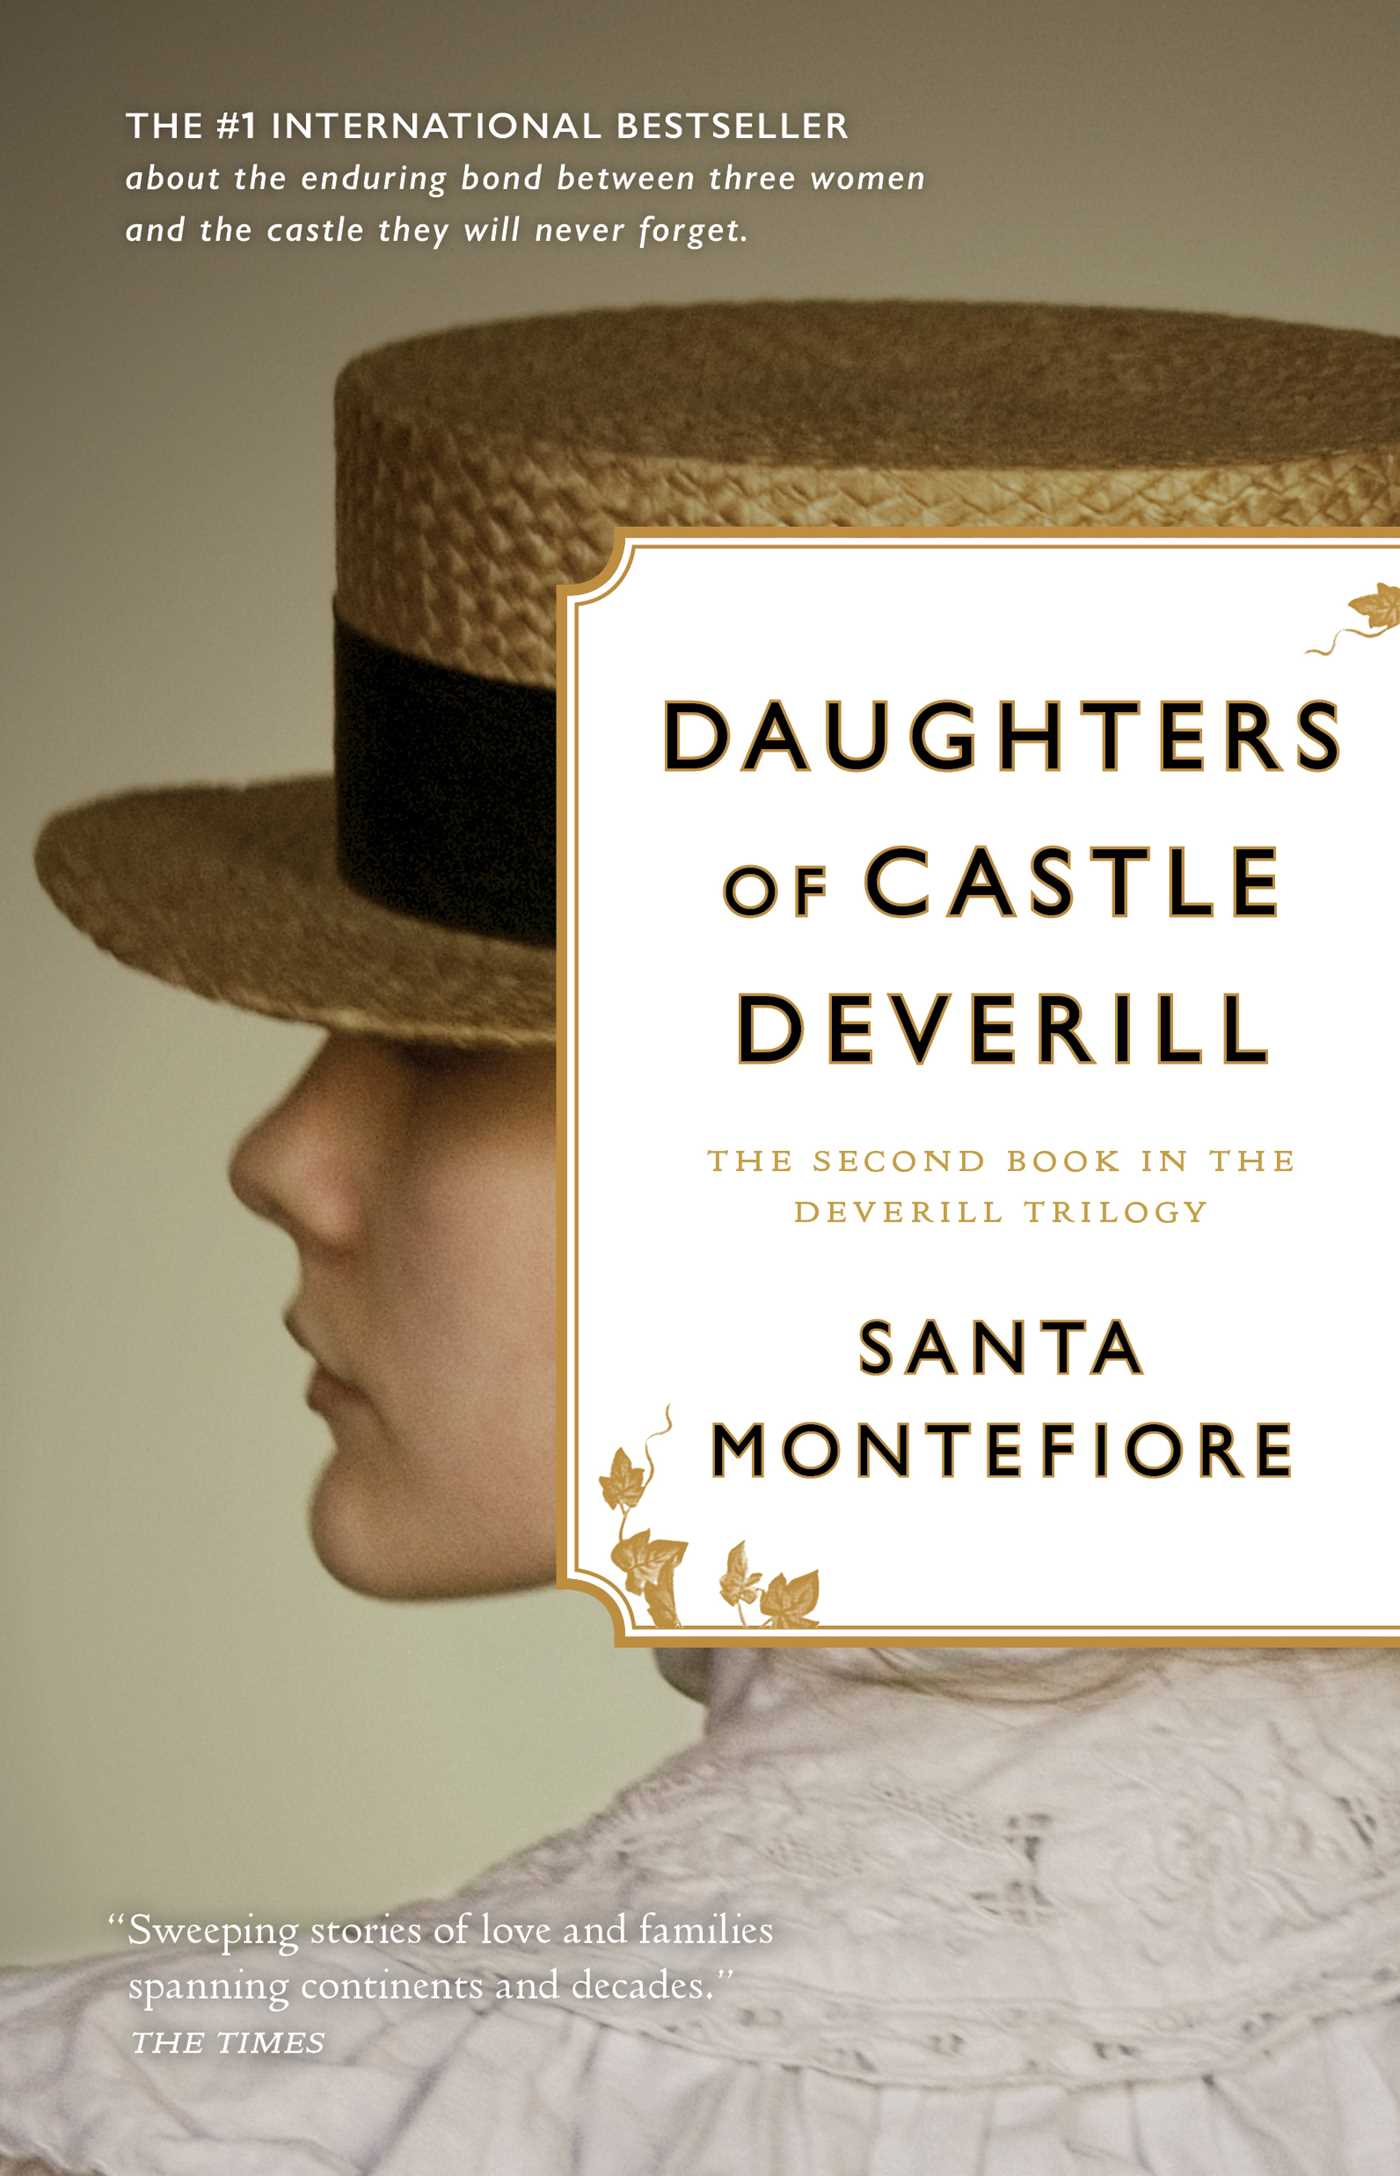 Daughters of castle deverill 9781471172380 hr